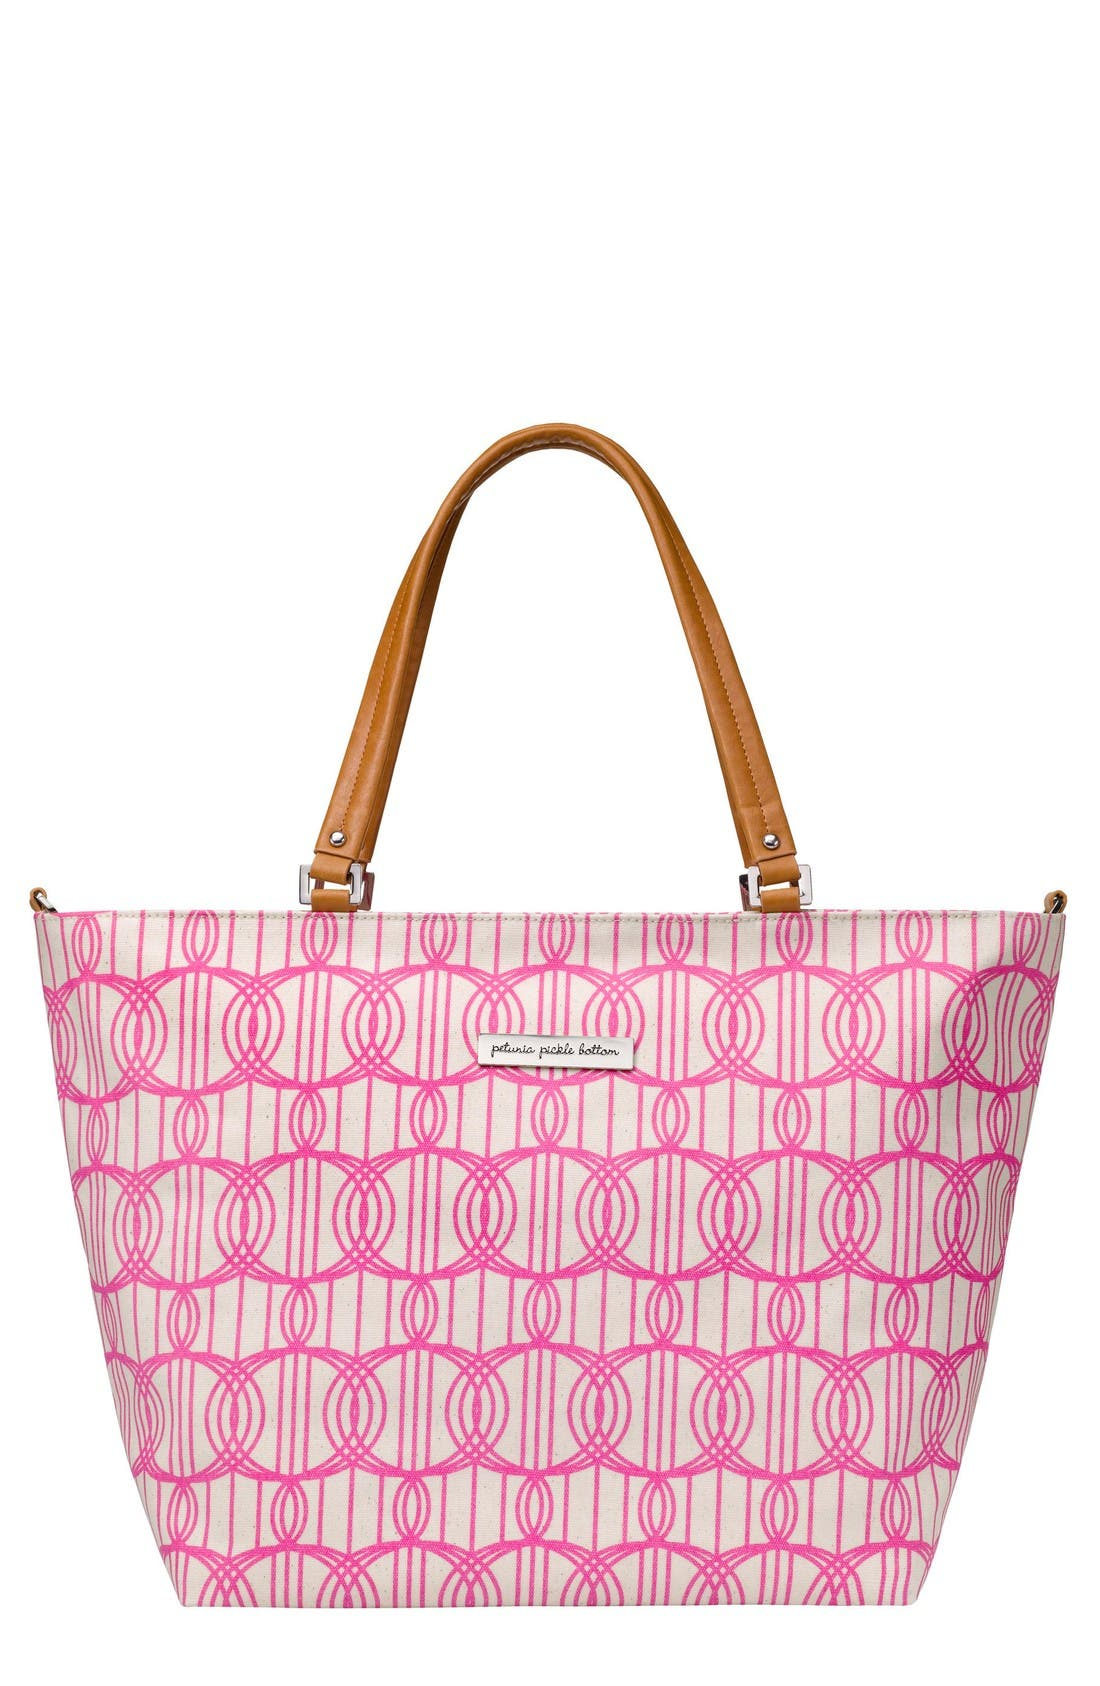 PETUNIA PICKLE BOTTOM 'Altogether' Glazed Canvas Tote